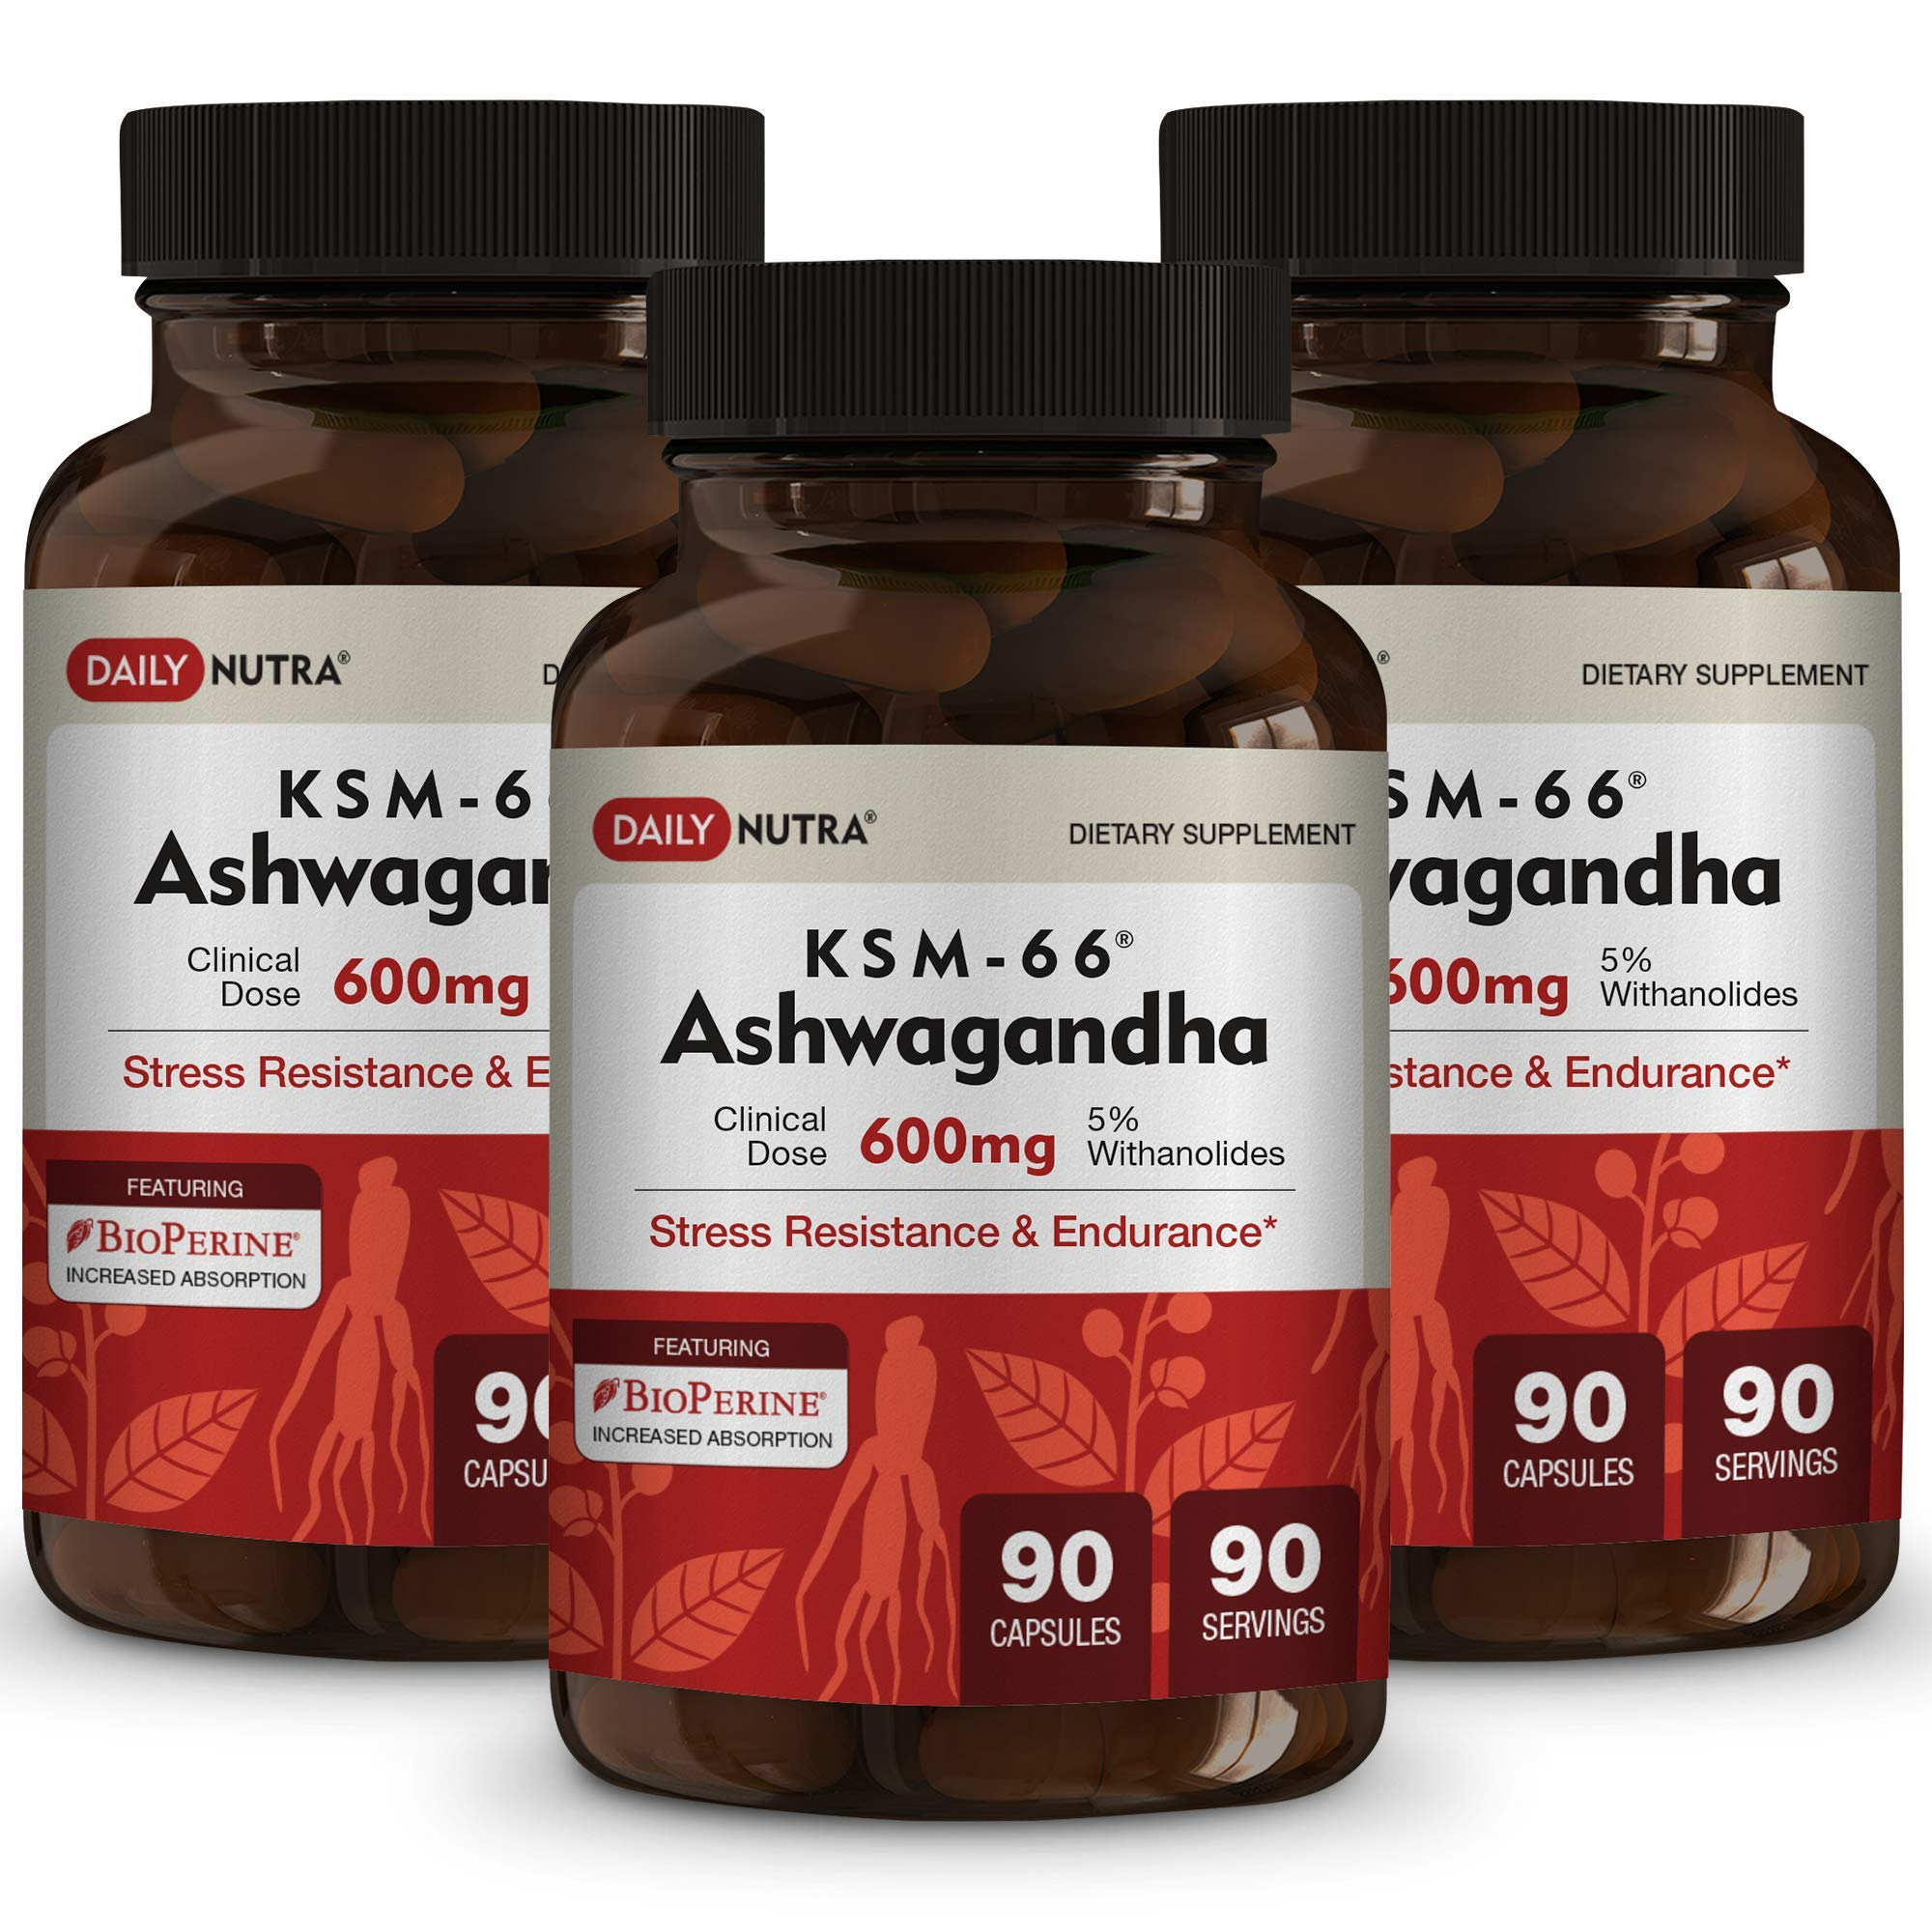 KSM-66 Ashwagandha 600mg Organic Full-Spectrum Root Extract with 5% Withanolides. Health Benefits Include Reduced Stress and Anxiety, Increased Energy and Focus. (3-Pack)